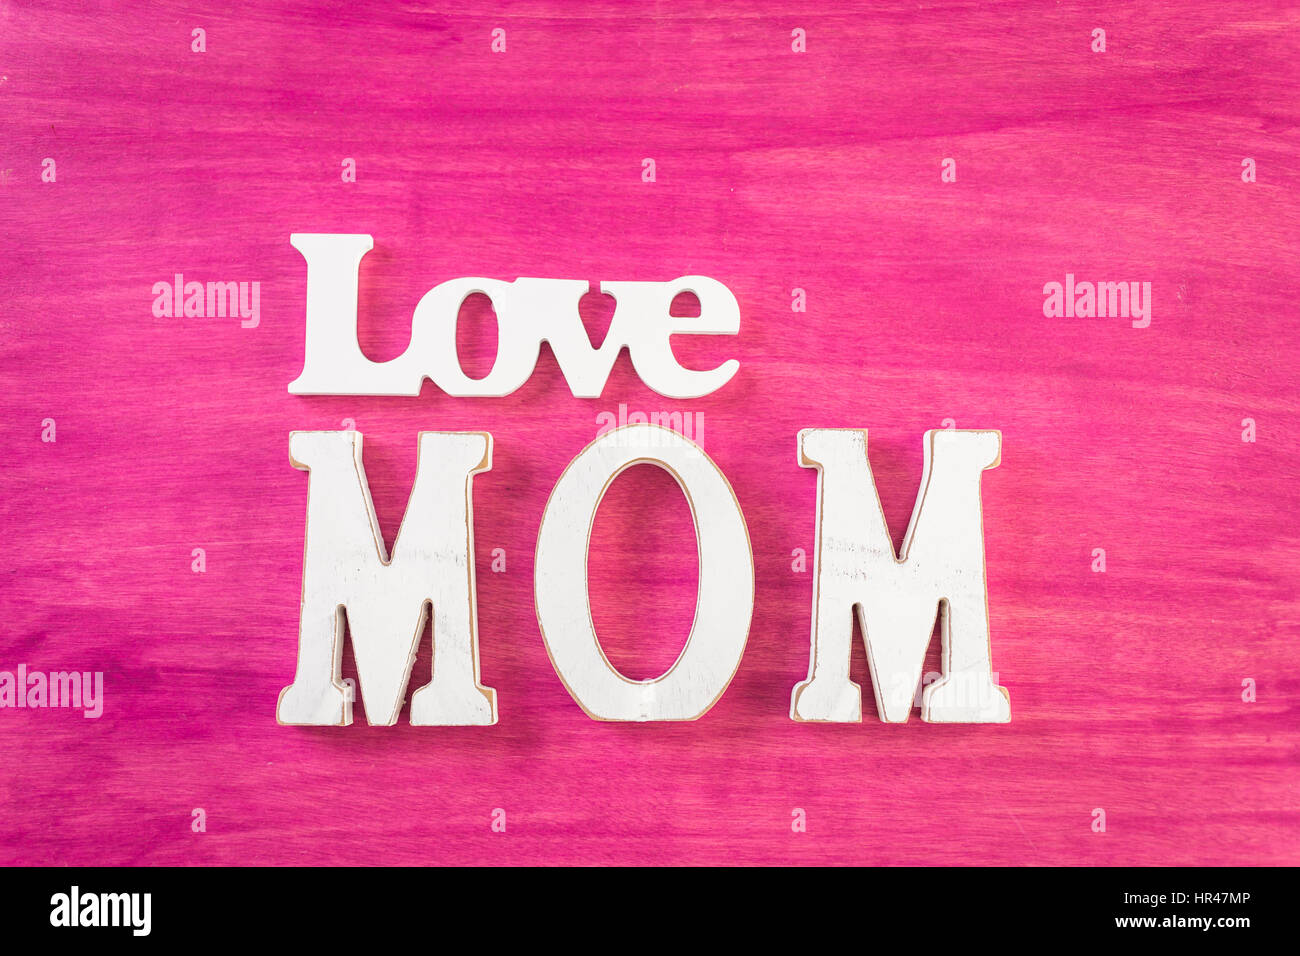 White Letters Mom On Painted Stock Photos  White Letters Mom On